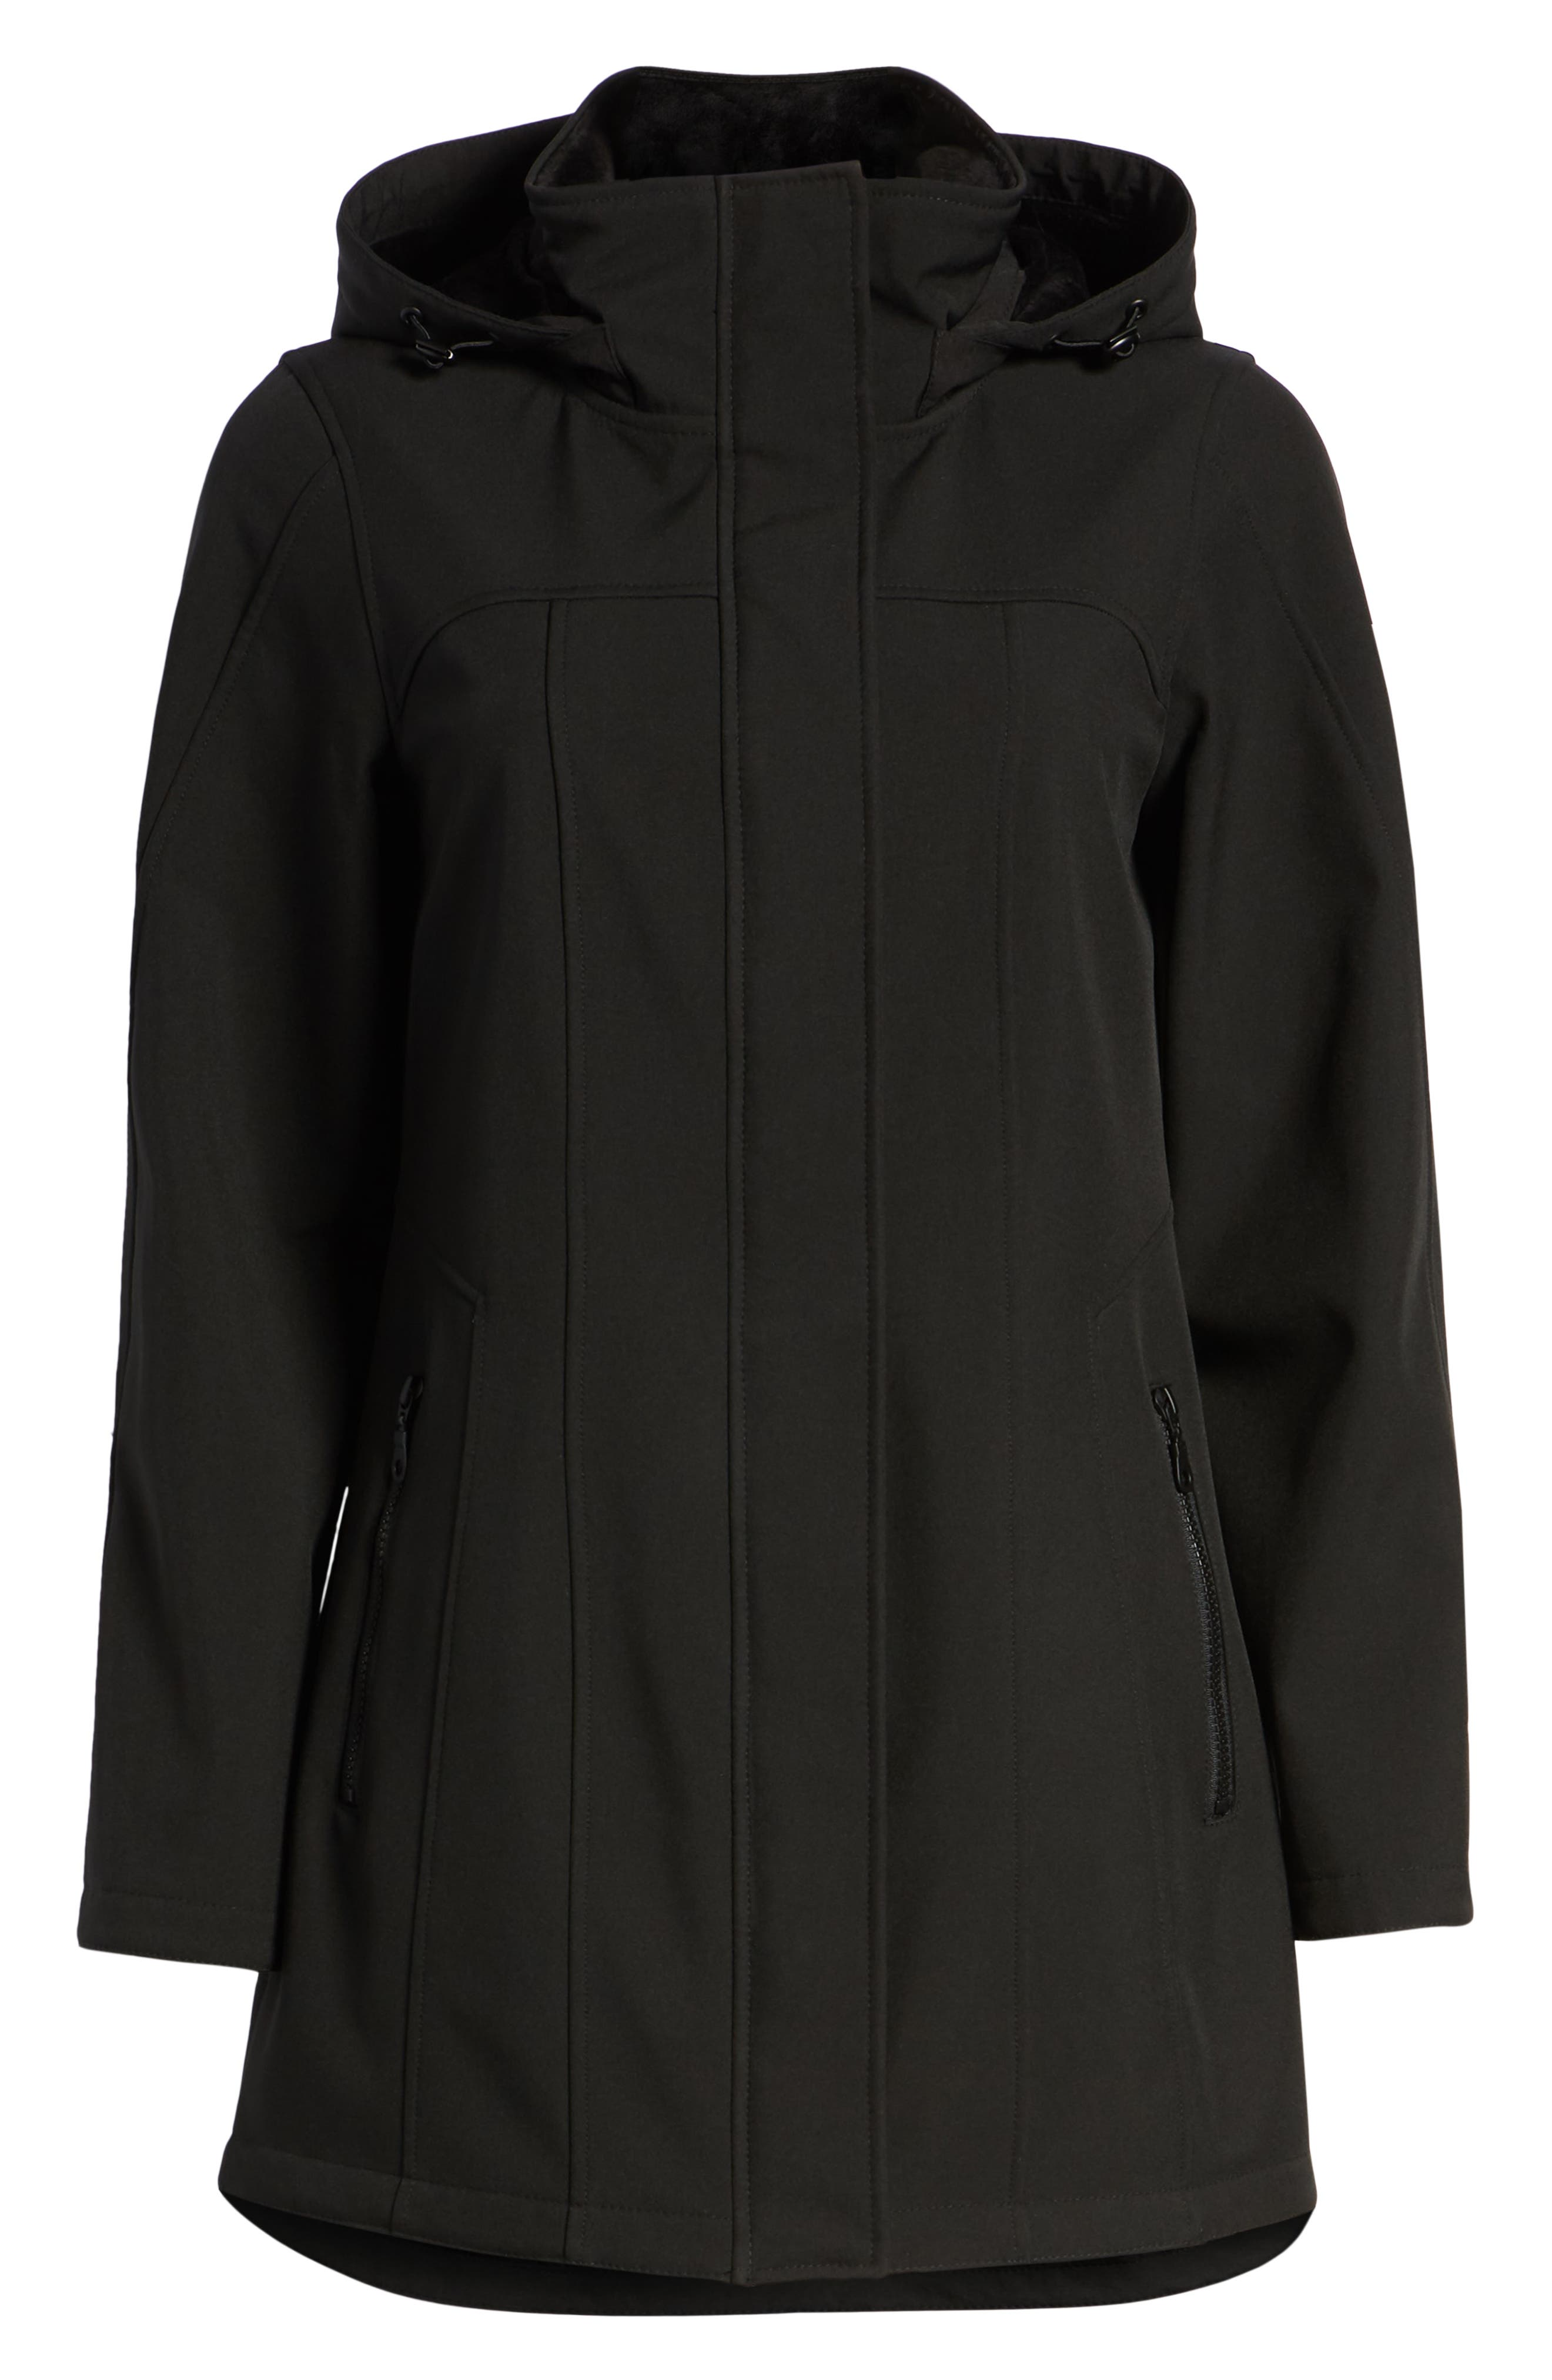 Hooded Soft Shell Jacket,                             Alternate thumbnail 6, color,                             BLACK